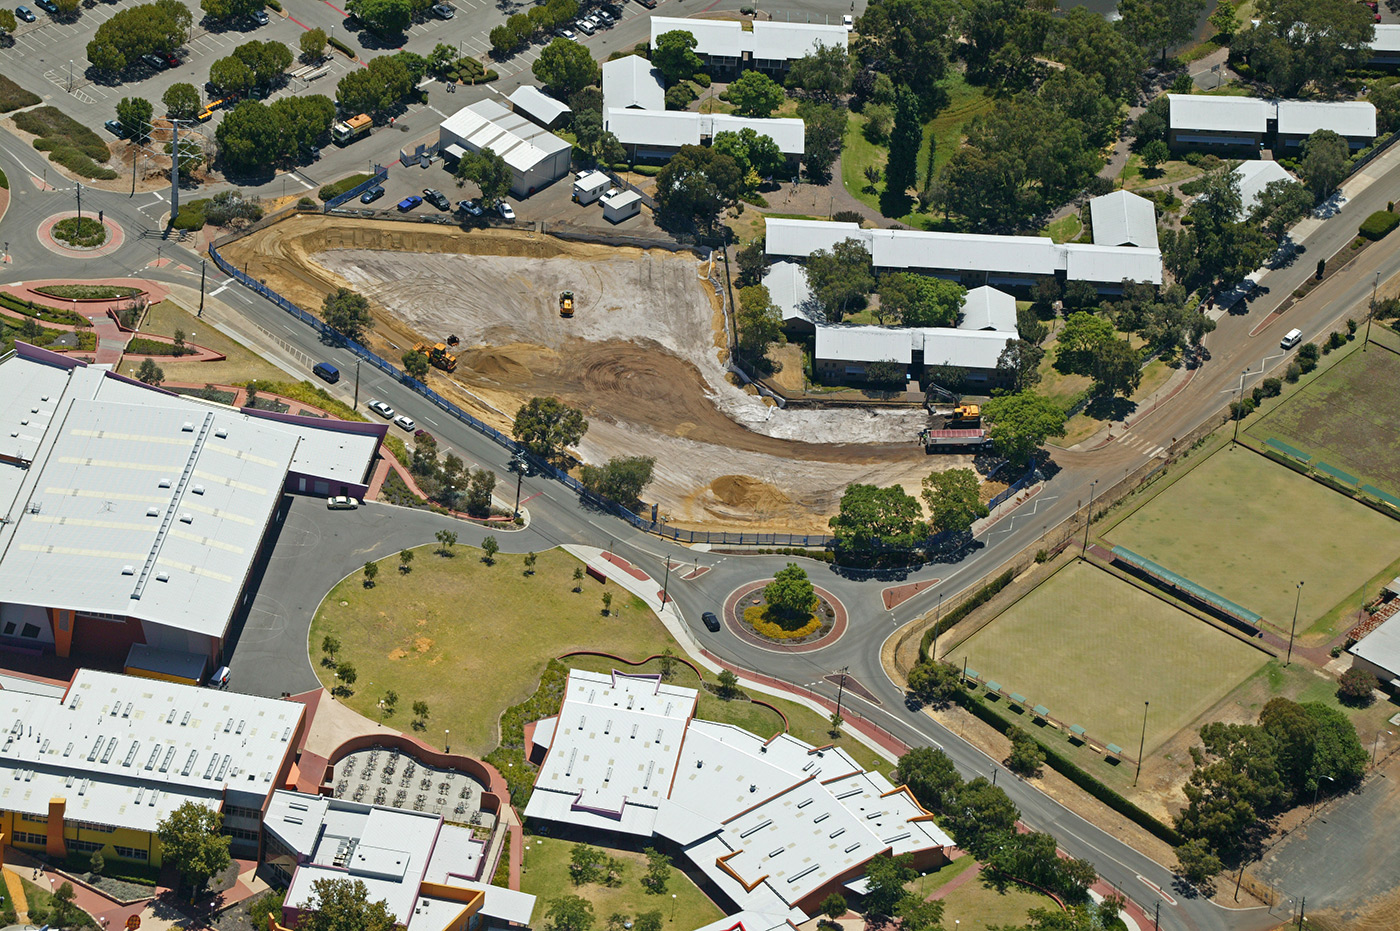 Edith Cowan University, Mount Lawley